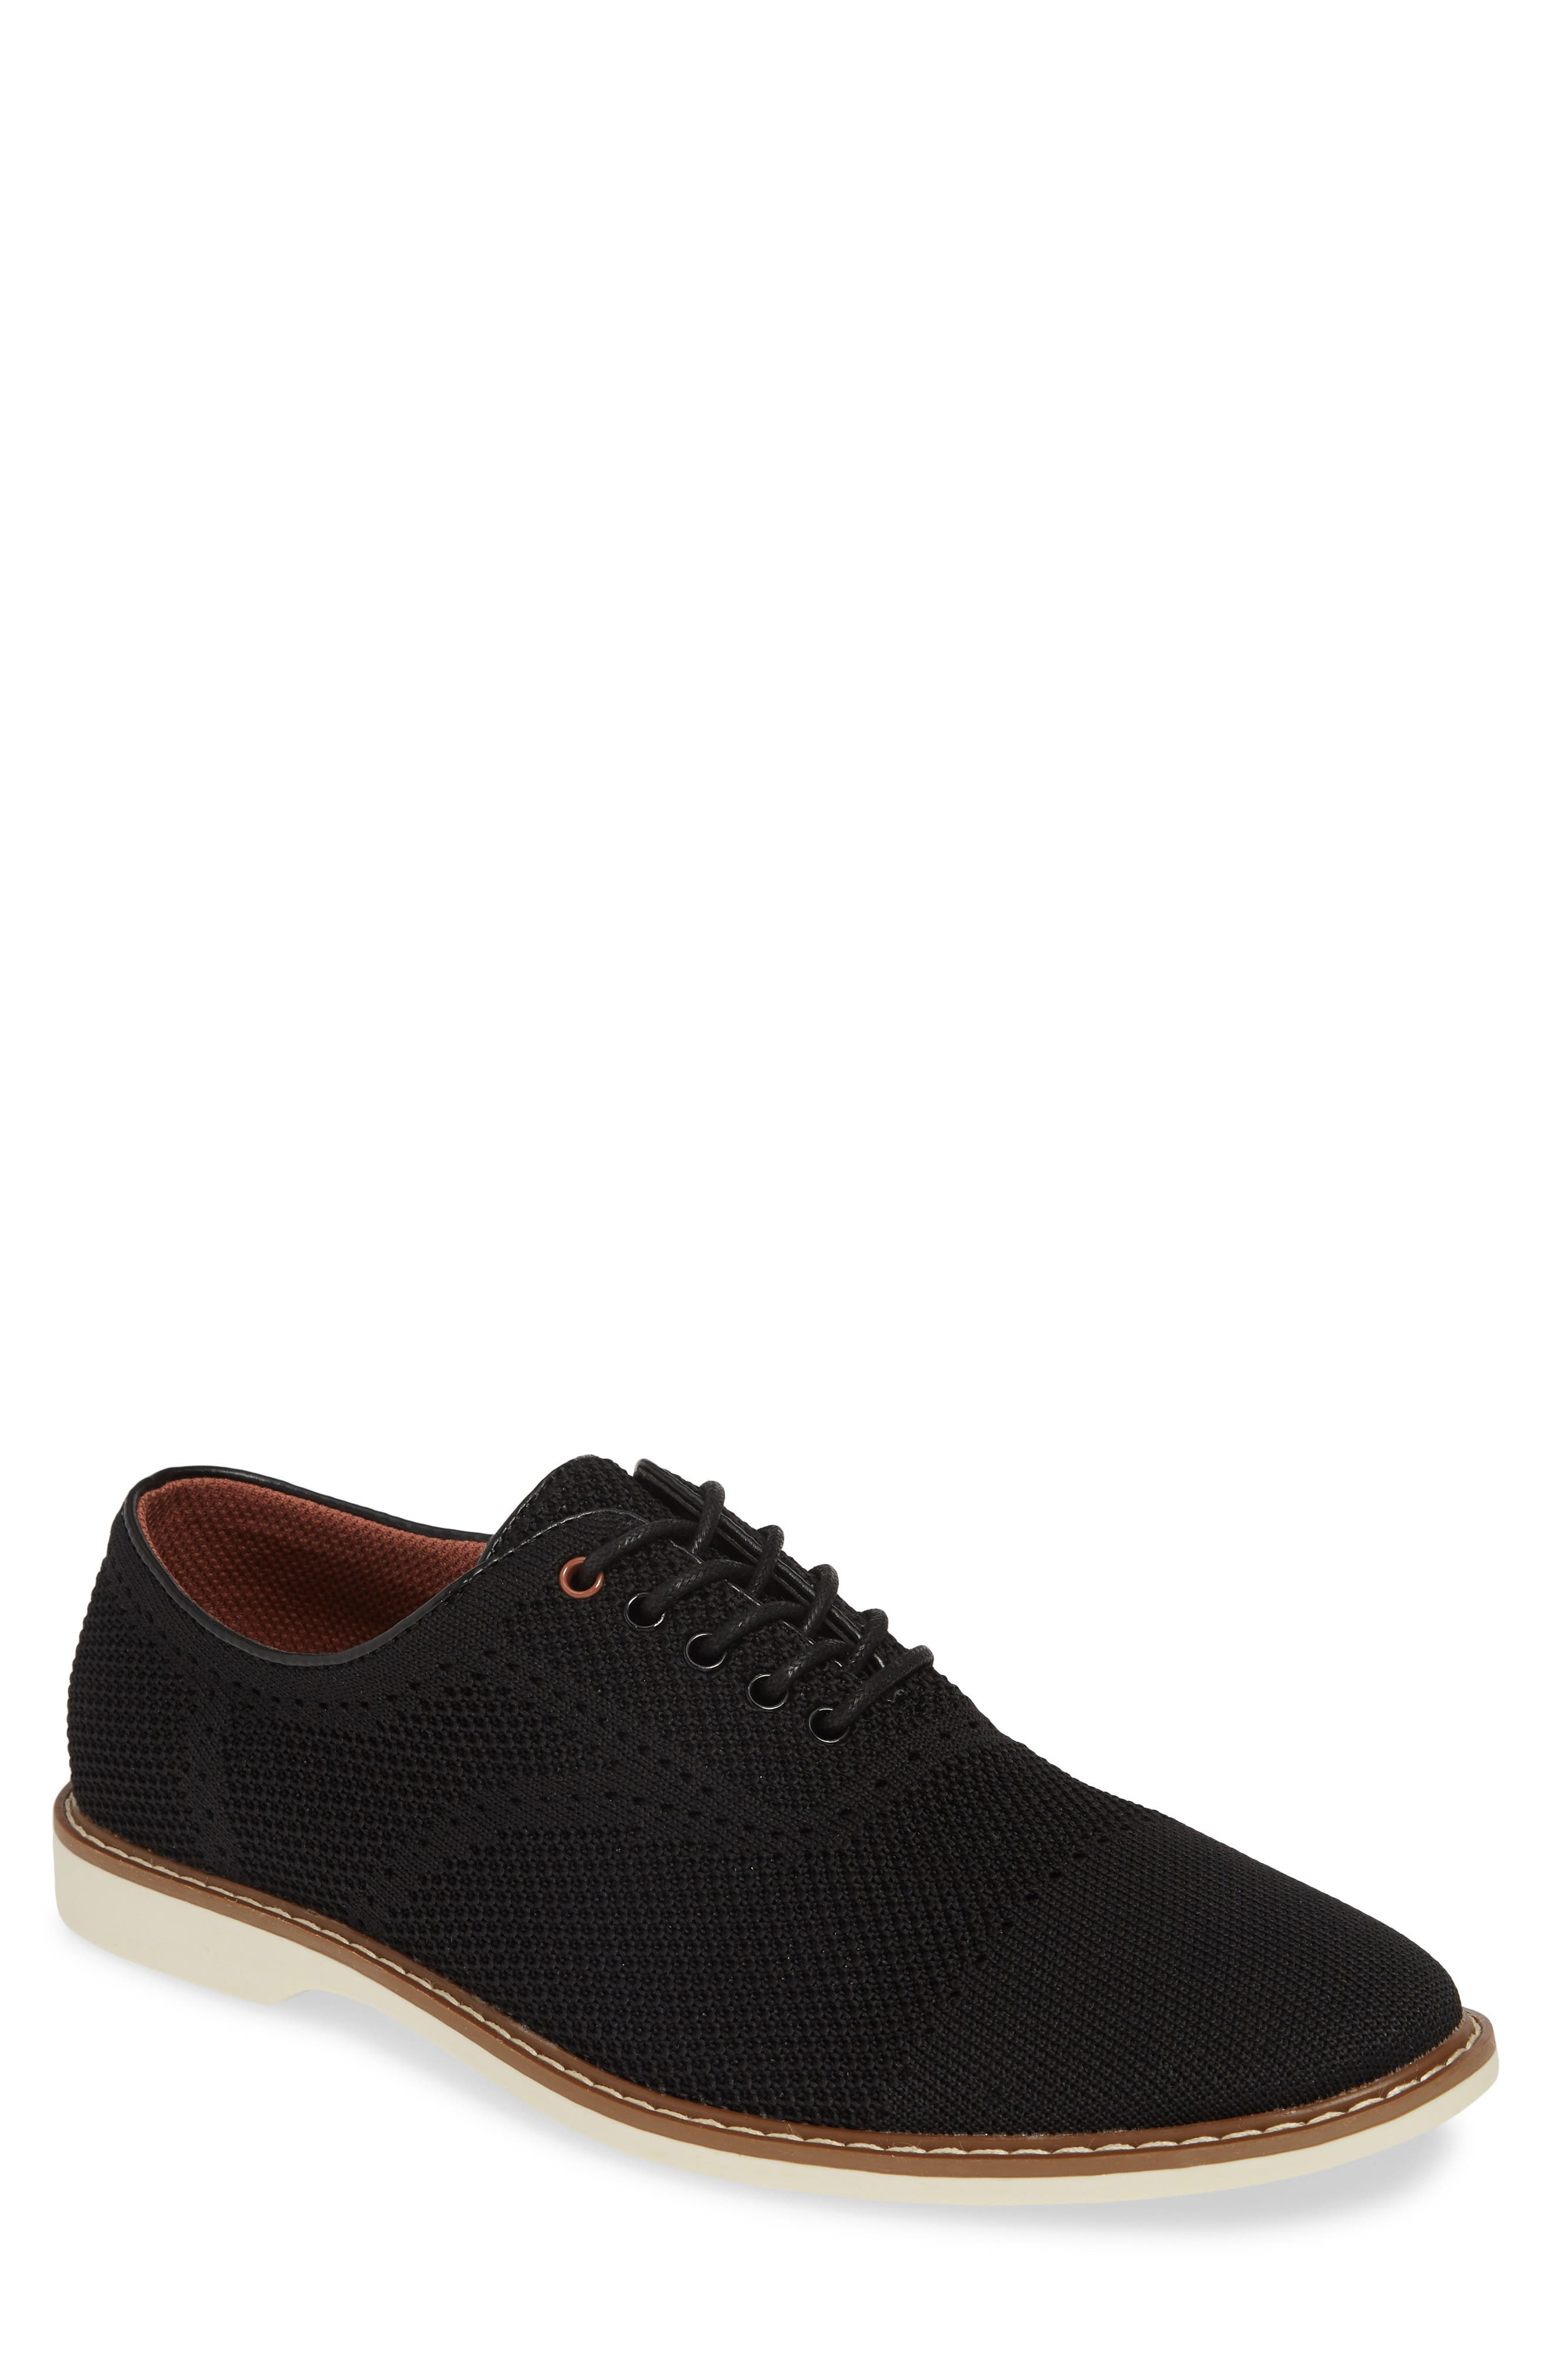 THE RAIL, Jared Plain Toe Oxford, Main thumbnail 1, color, BLACK